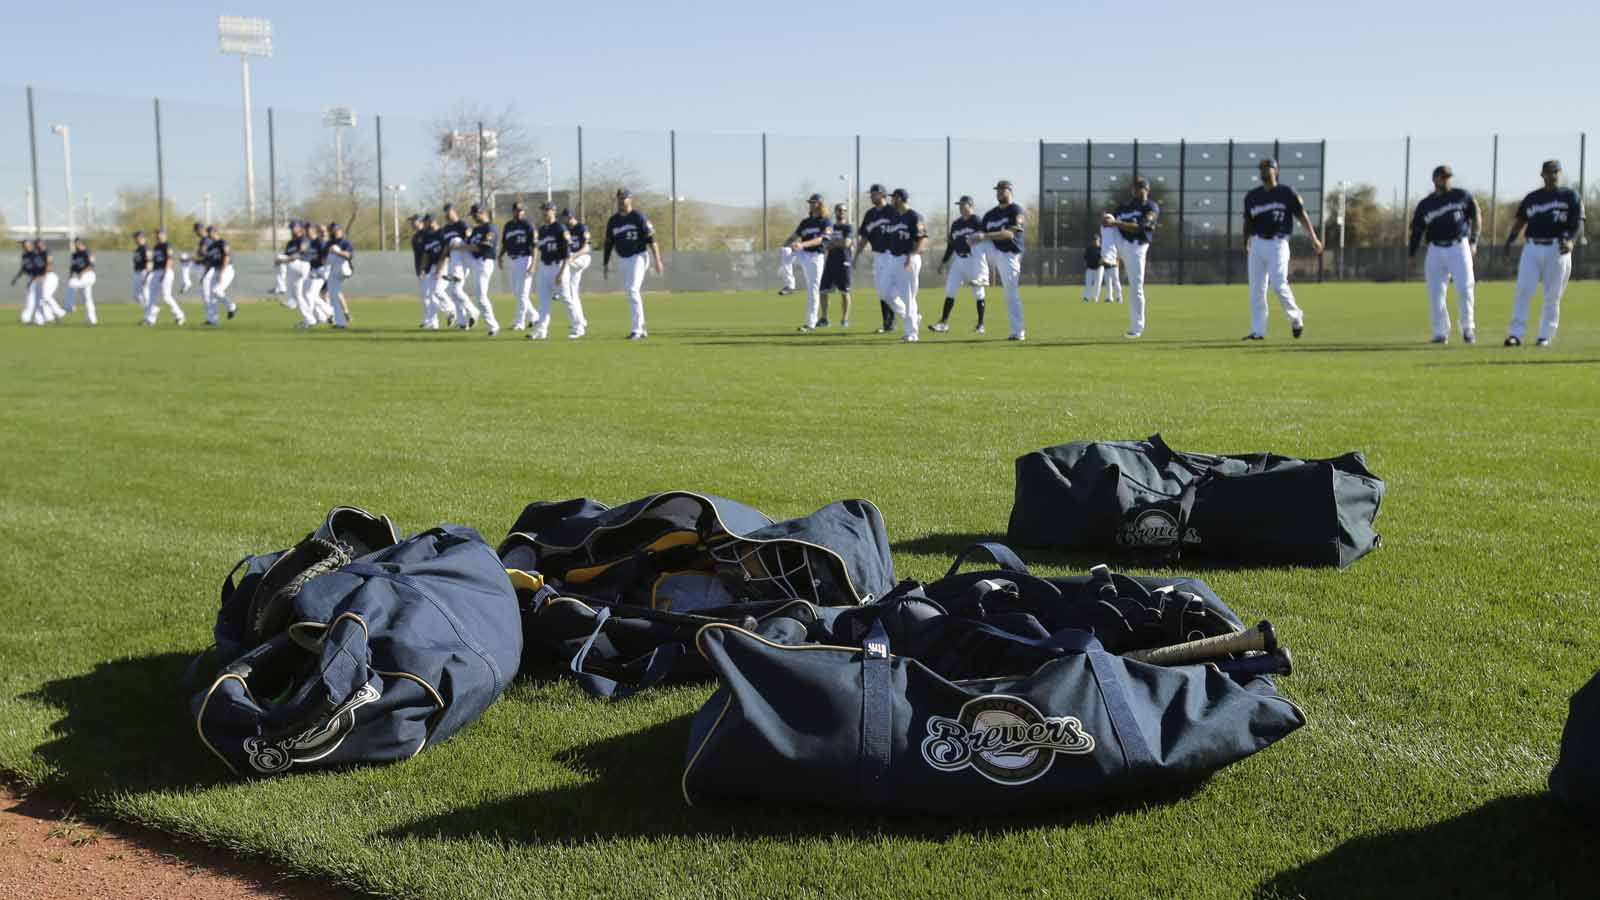 Milwaukee Brewers pitchers and catchers warm up before spring training camp at Maryvale Baseball Park in Maryvale, Ariz., on Feb. 16, 2017.